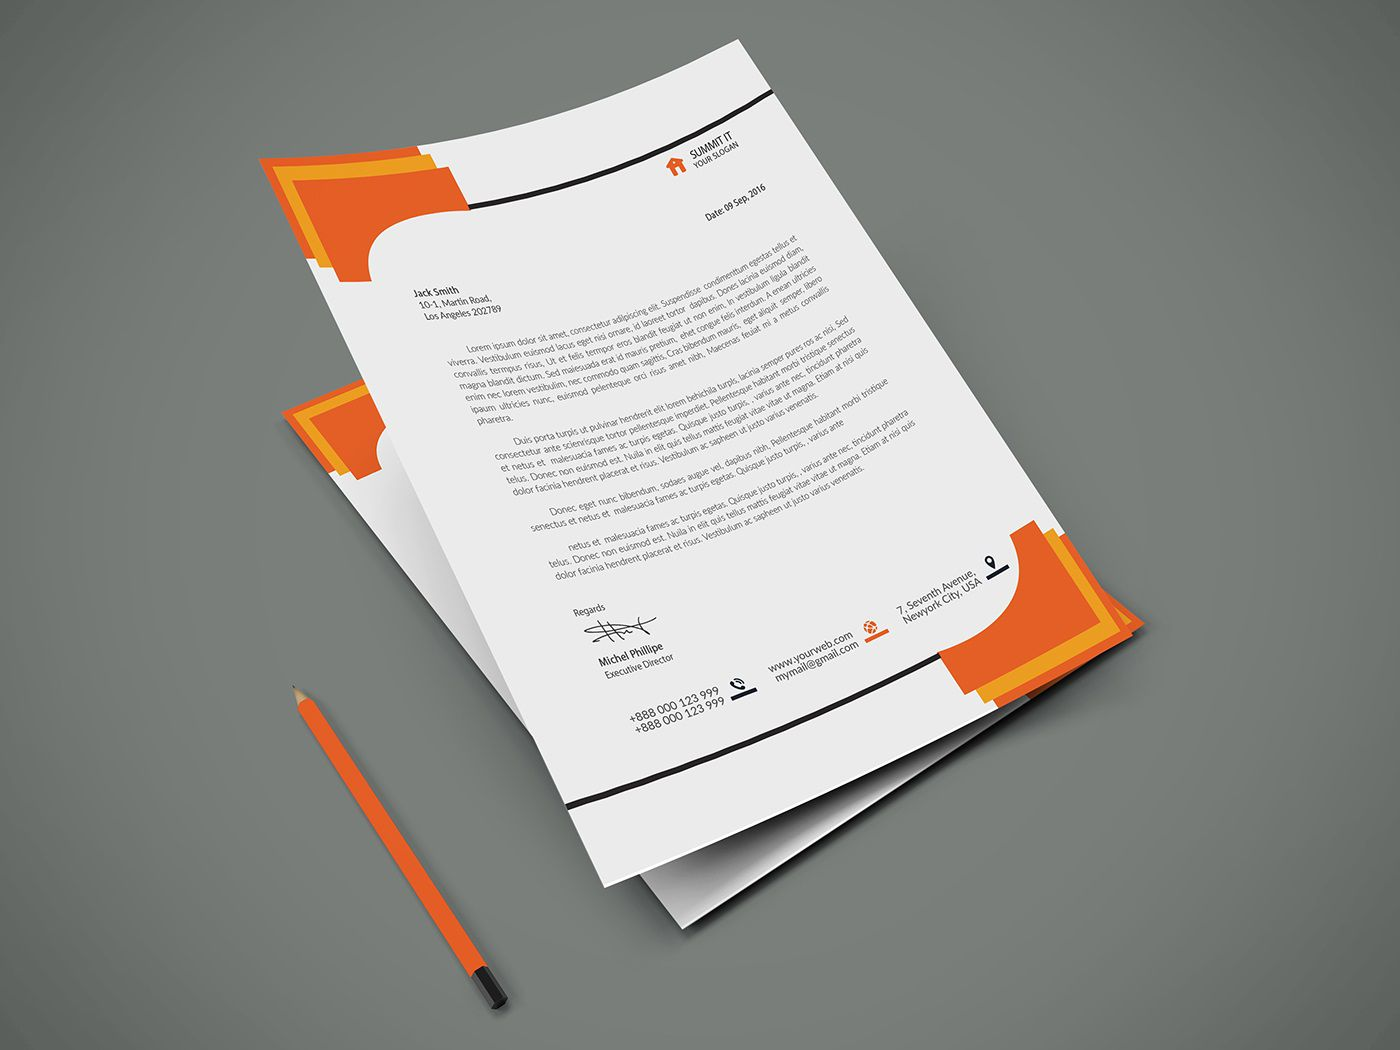 004 Formidable Letterhead Template Free Download Psd High Resolution  Corporate A4Full